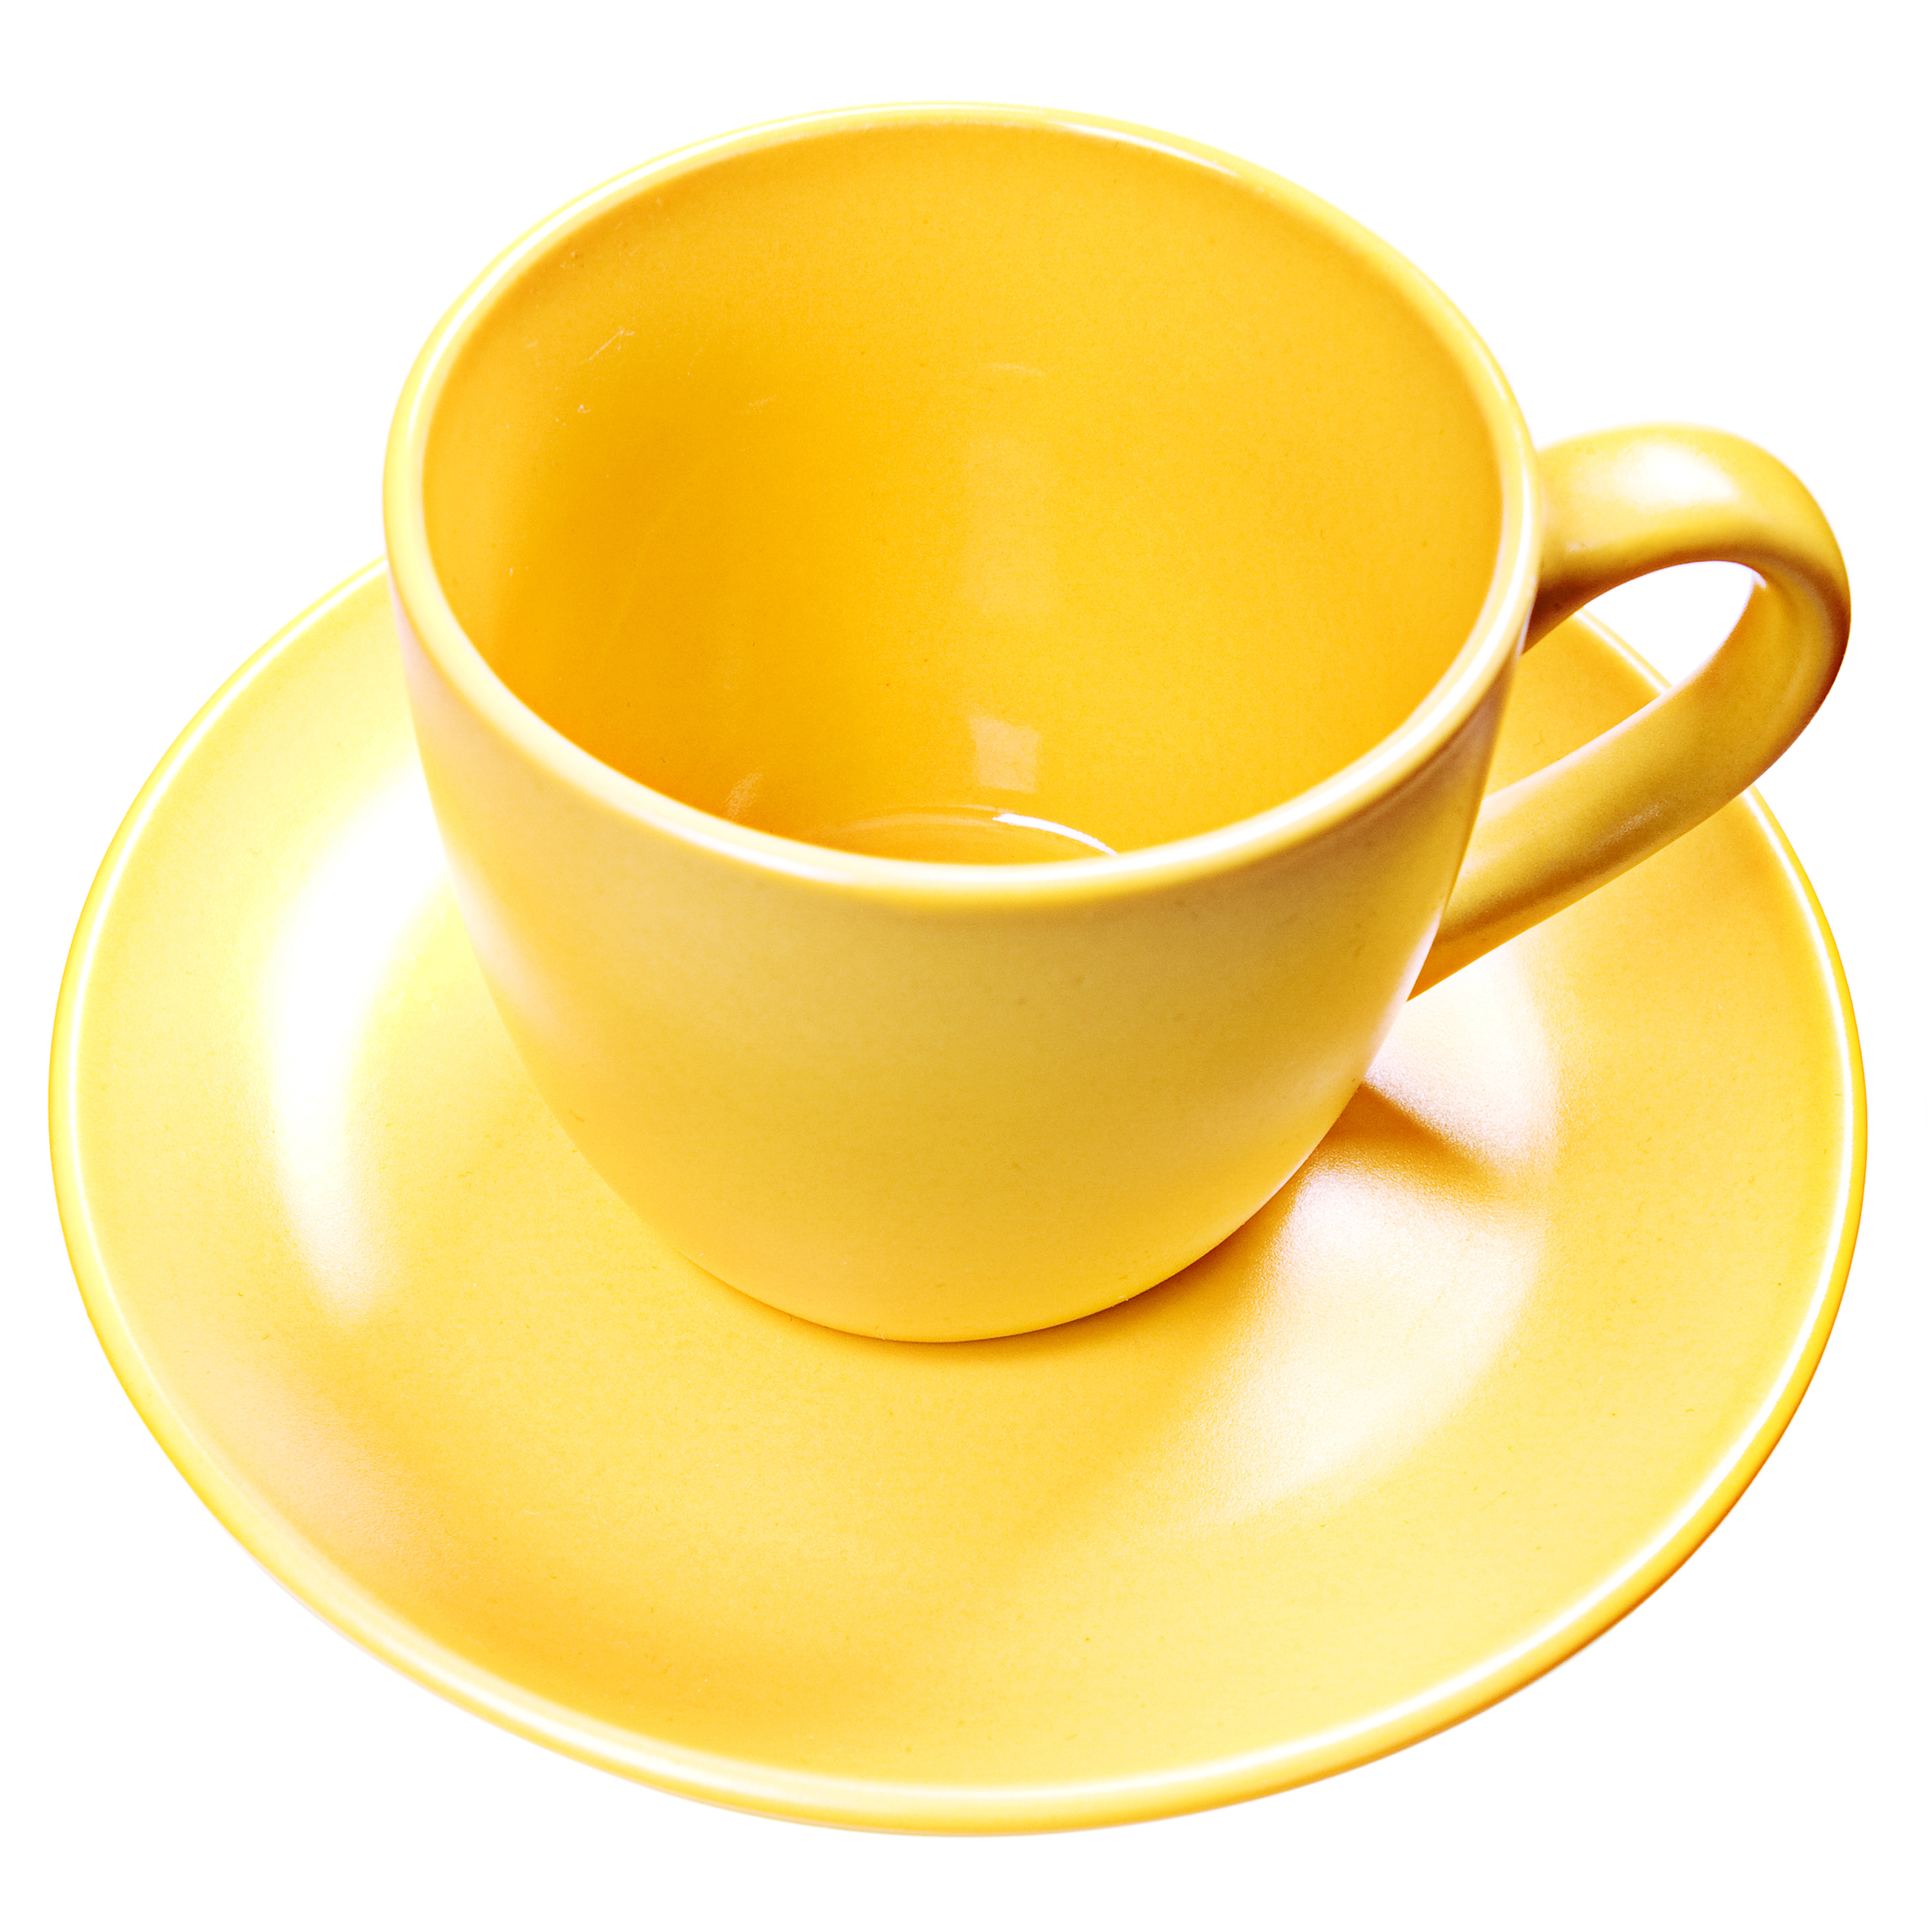 Yellow cup, Nobody, Objects, Orange, Pink, HQ Photo